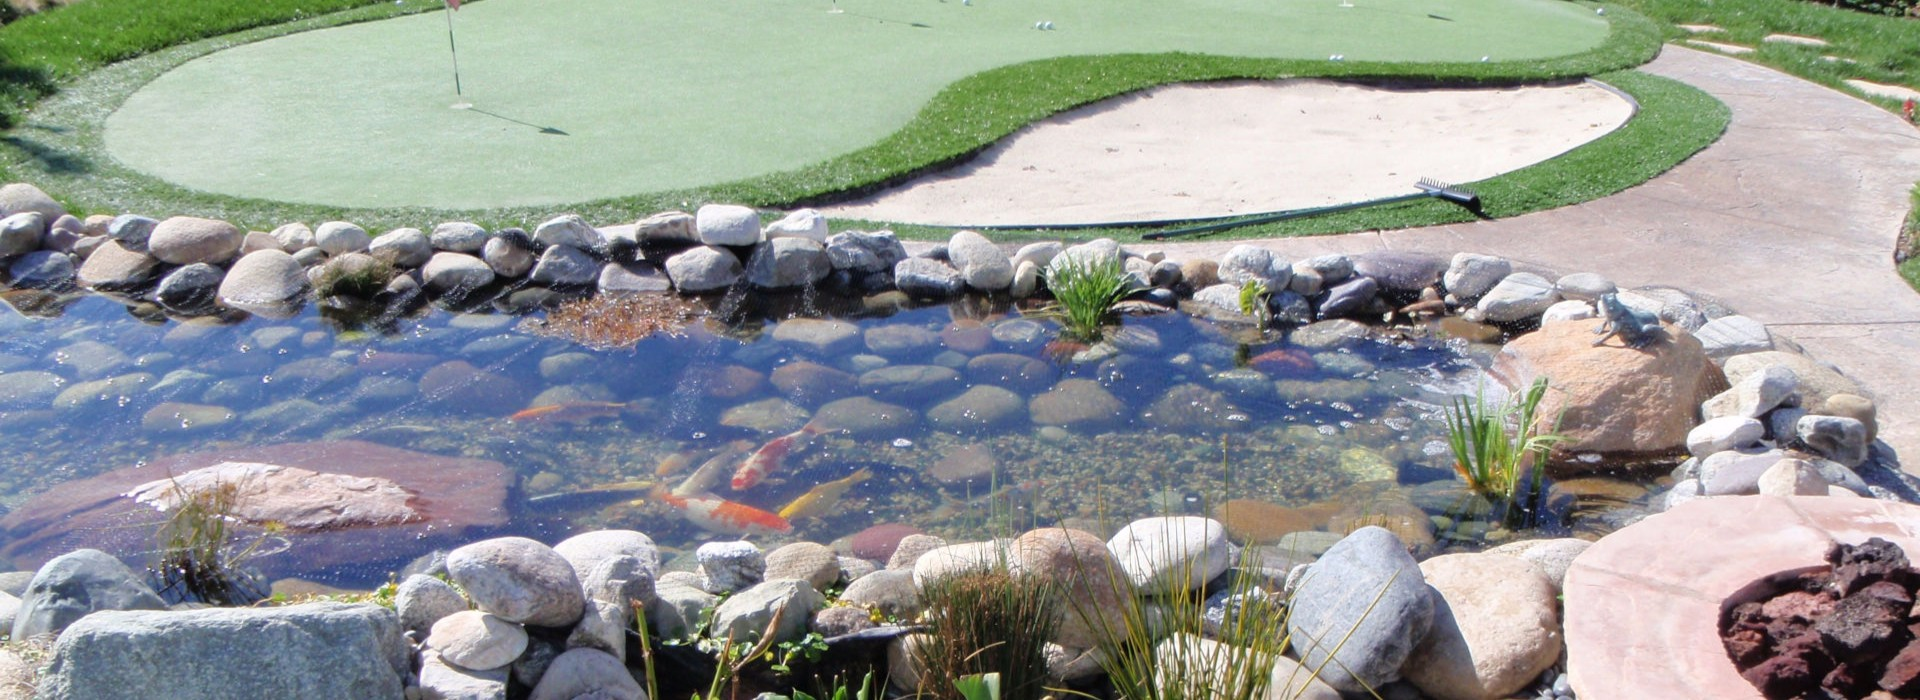 backyard-putting-green-and-pond-banner-1